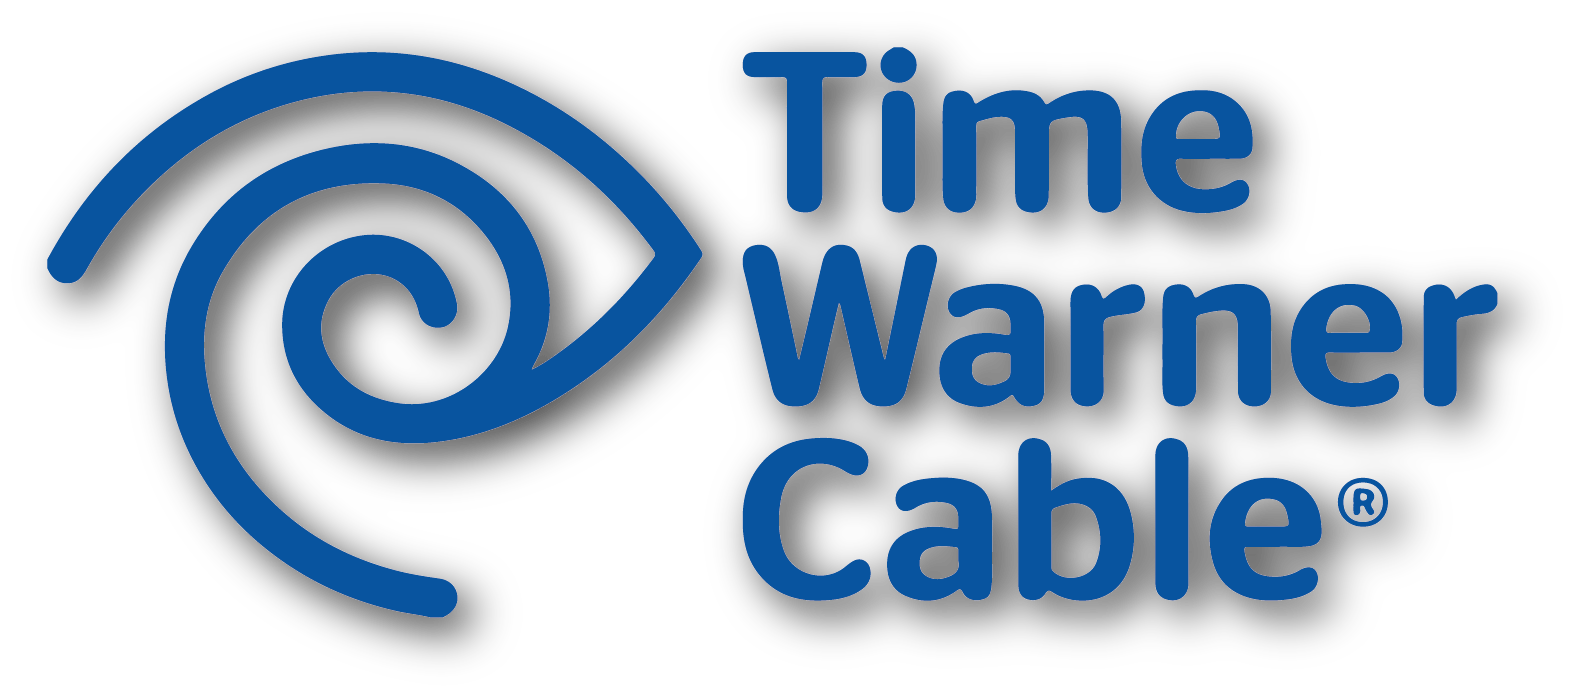 Time Warner Cable Deals For New Customers: Time Warner Cable TV Internet Home Phone Packages 6 Bundlesrh:bestcablesatellitetv.com,Design